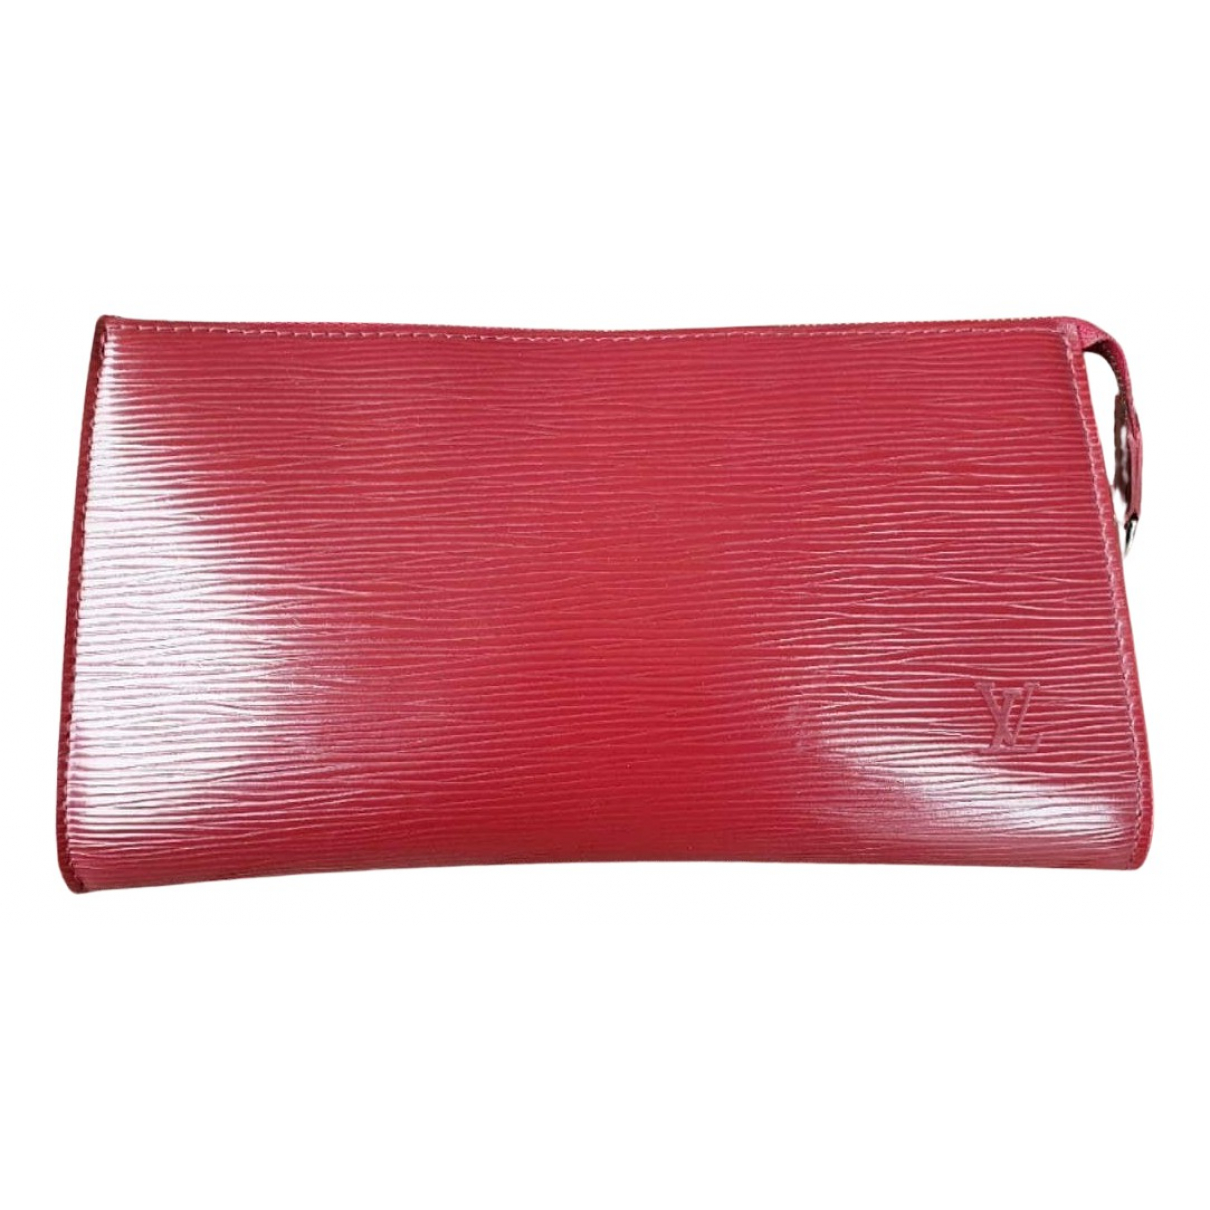 Louis Vuitton N Red Leather Clutch bag for Women N